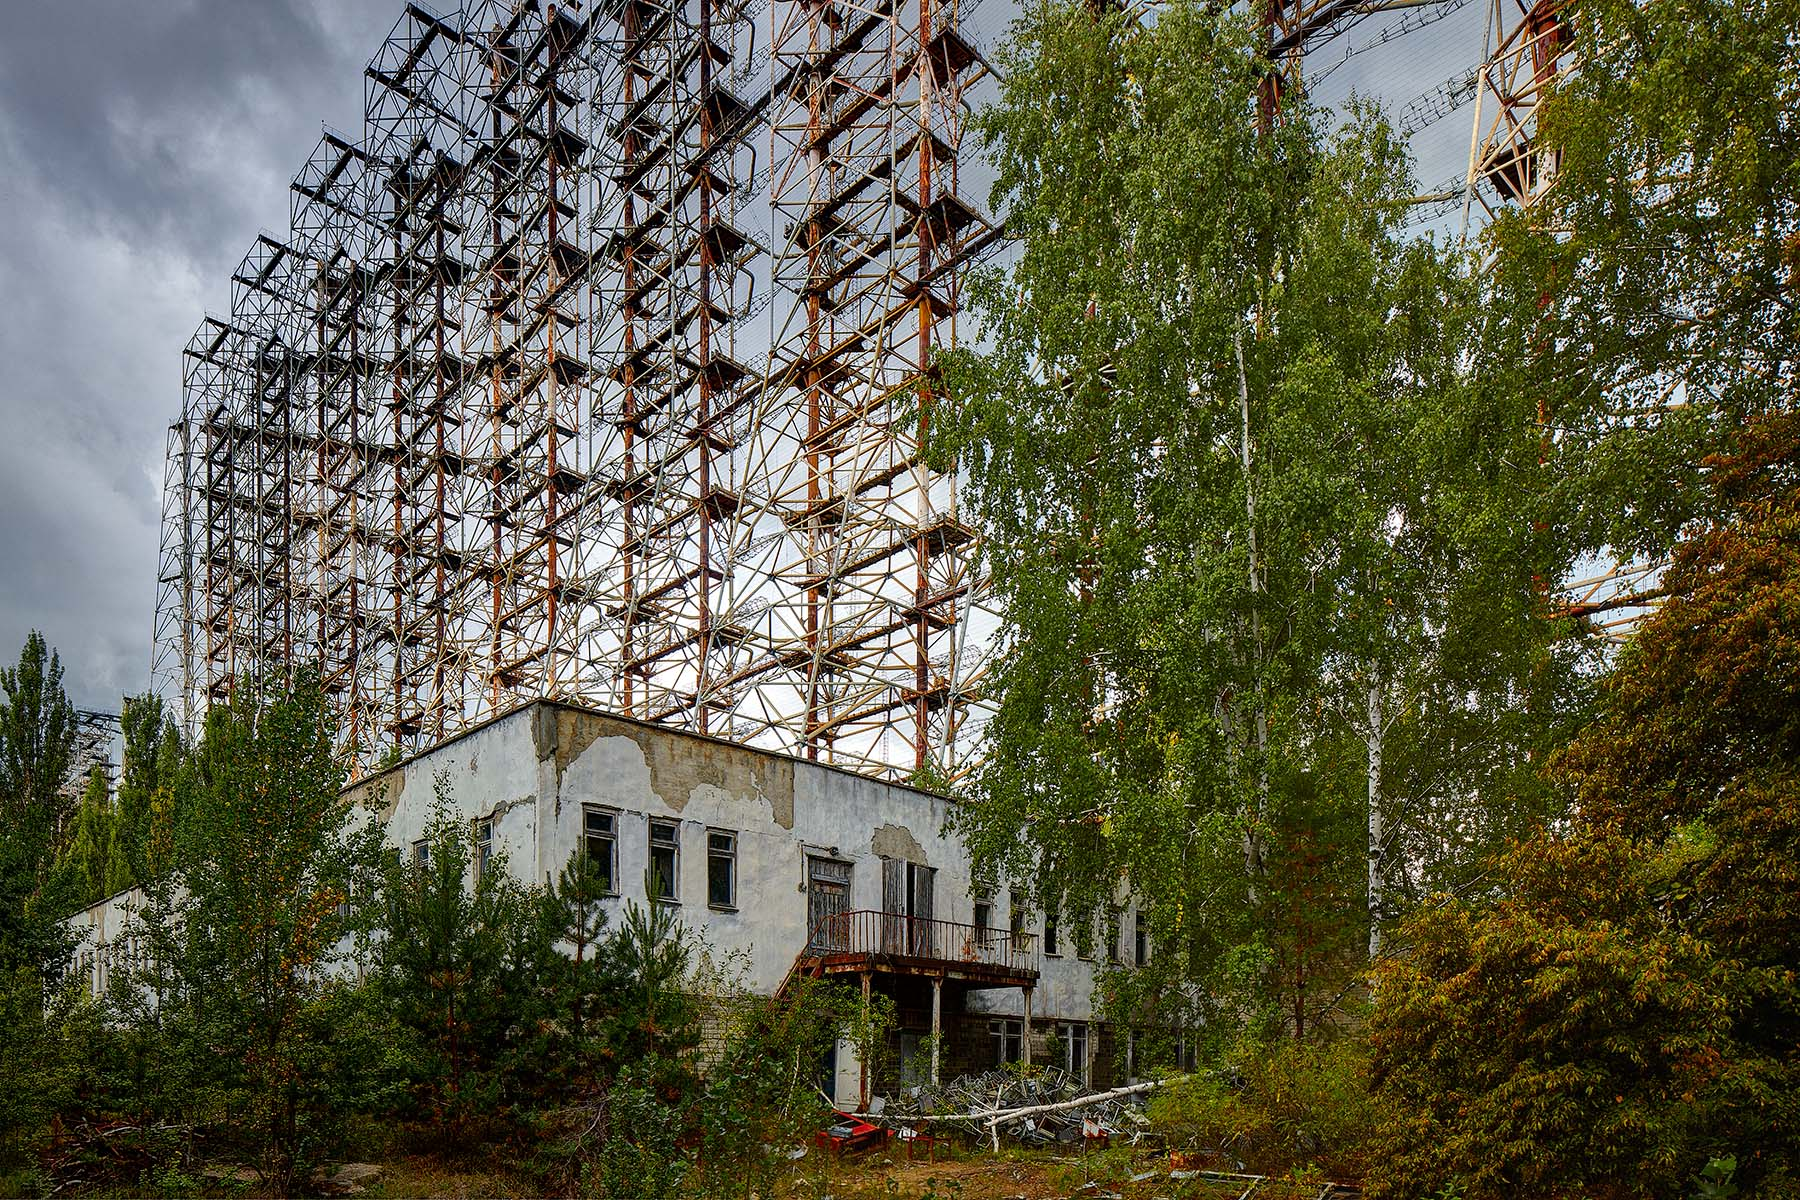 Duga 1 was a major part of the Soviet early warning radar designed to detect nuclear attack from the West. Its intricate antenna juts out from the forest measuring 150x500 metres. Despite being in Ukraine, it was  refered to in the west as the 'Russian Woodpecker' because of the strange stocatto taps that it created in short wave radio bands around the world. Situated inside what is now the Chernobyl exclusion zone, it is eerie to see the illustrations of NATO warheads in what was a hotlink to the Soviet nuclear command.